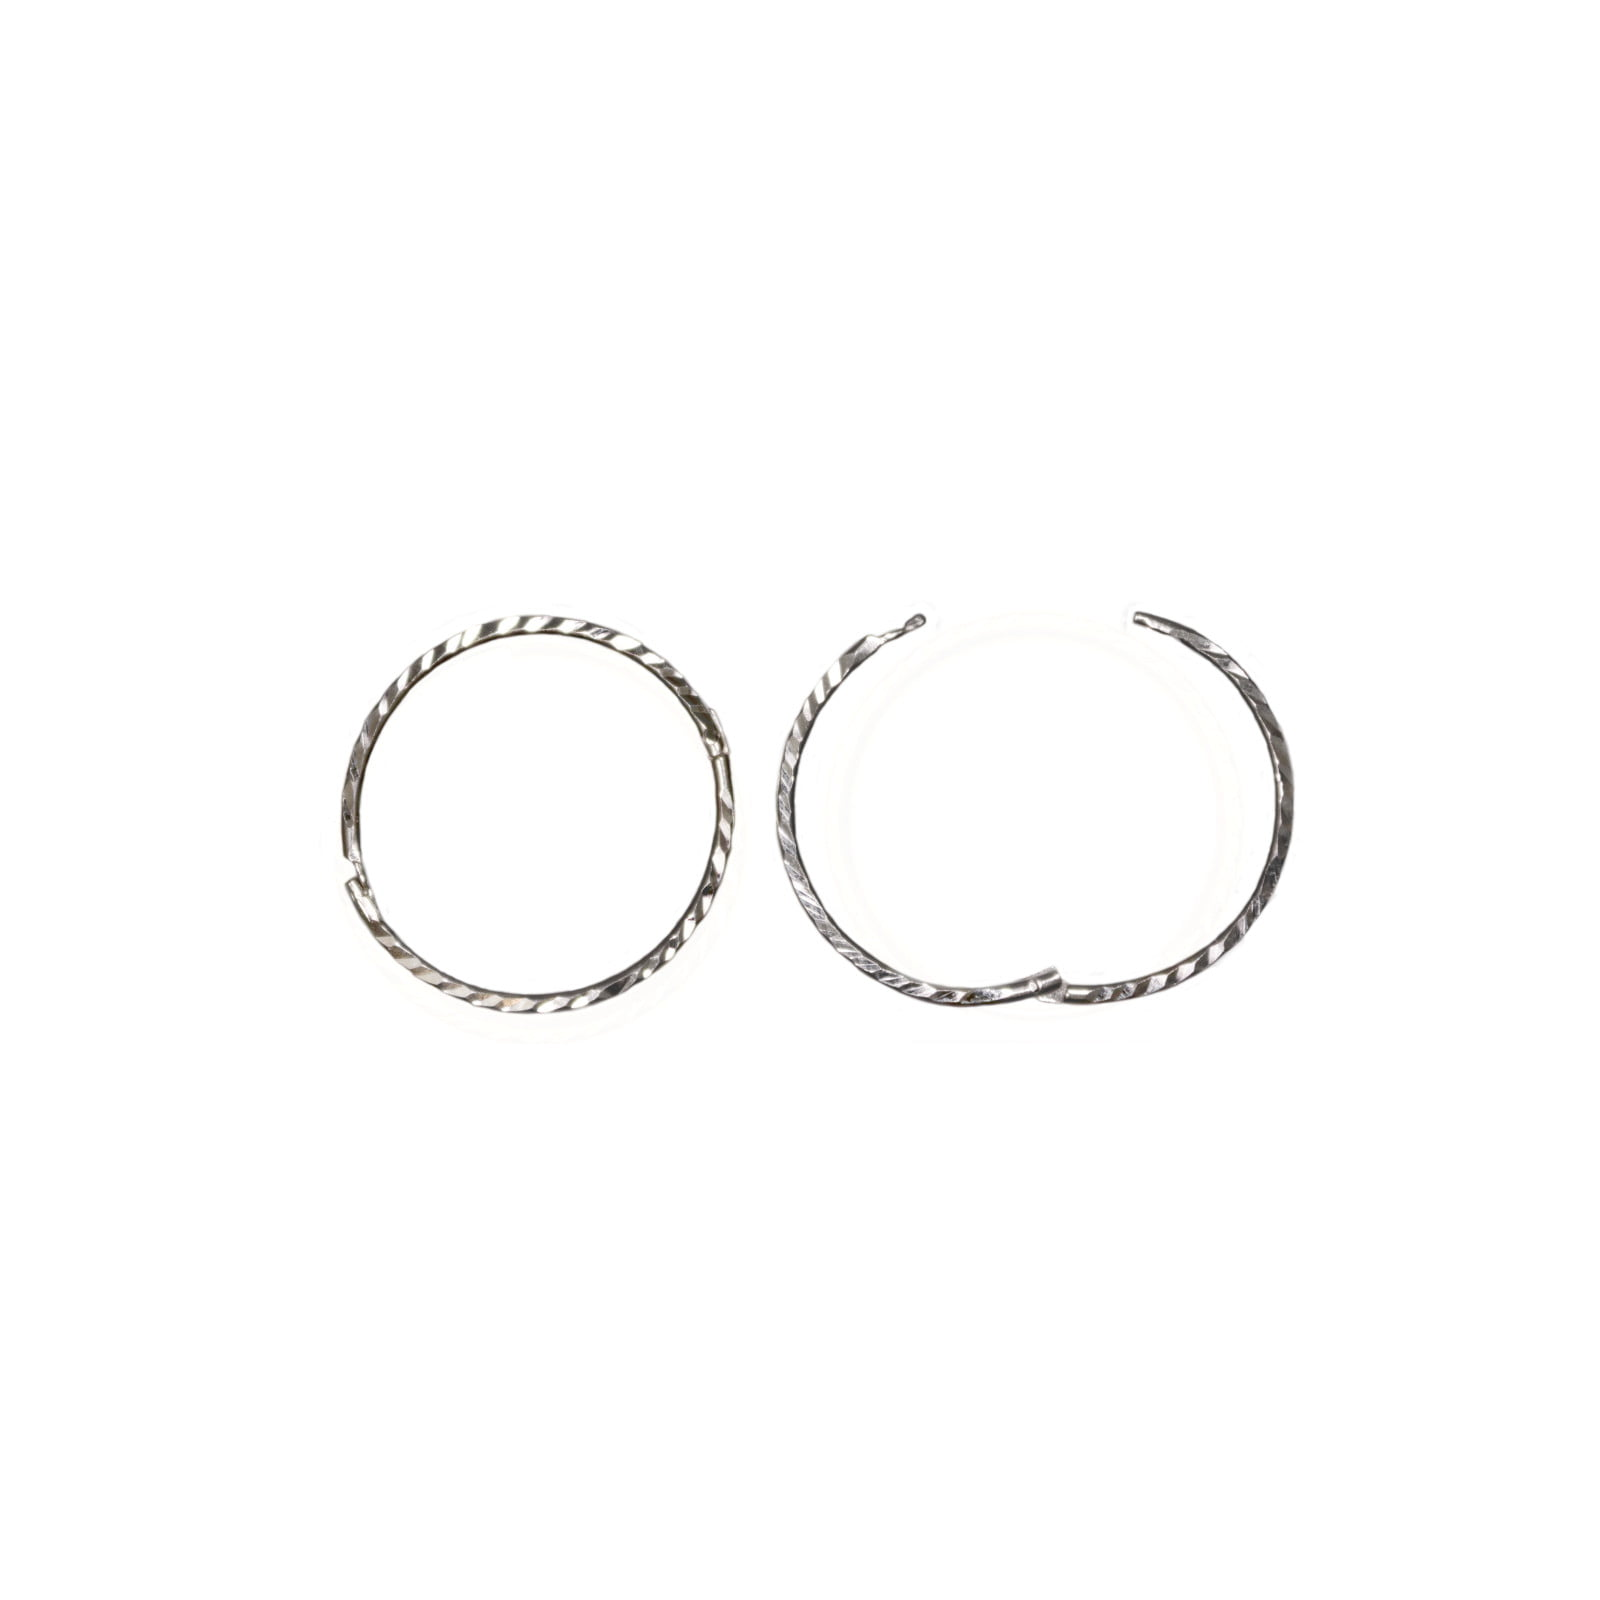 Pair of 925 Sterling silver Diamond cut hinged hoop earrings. 14mm across